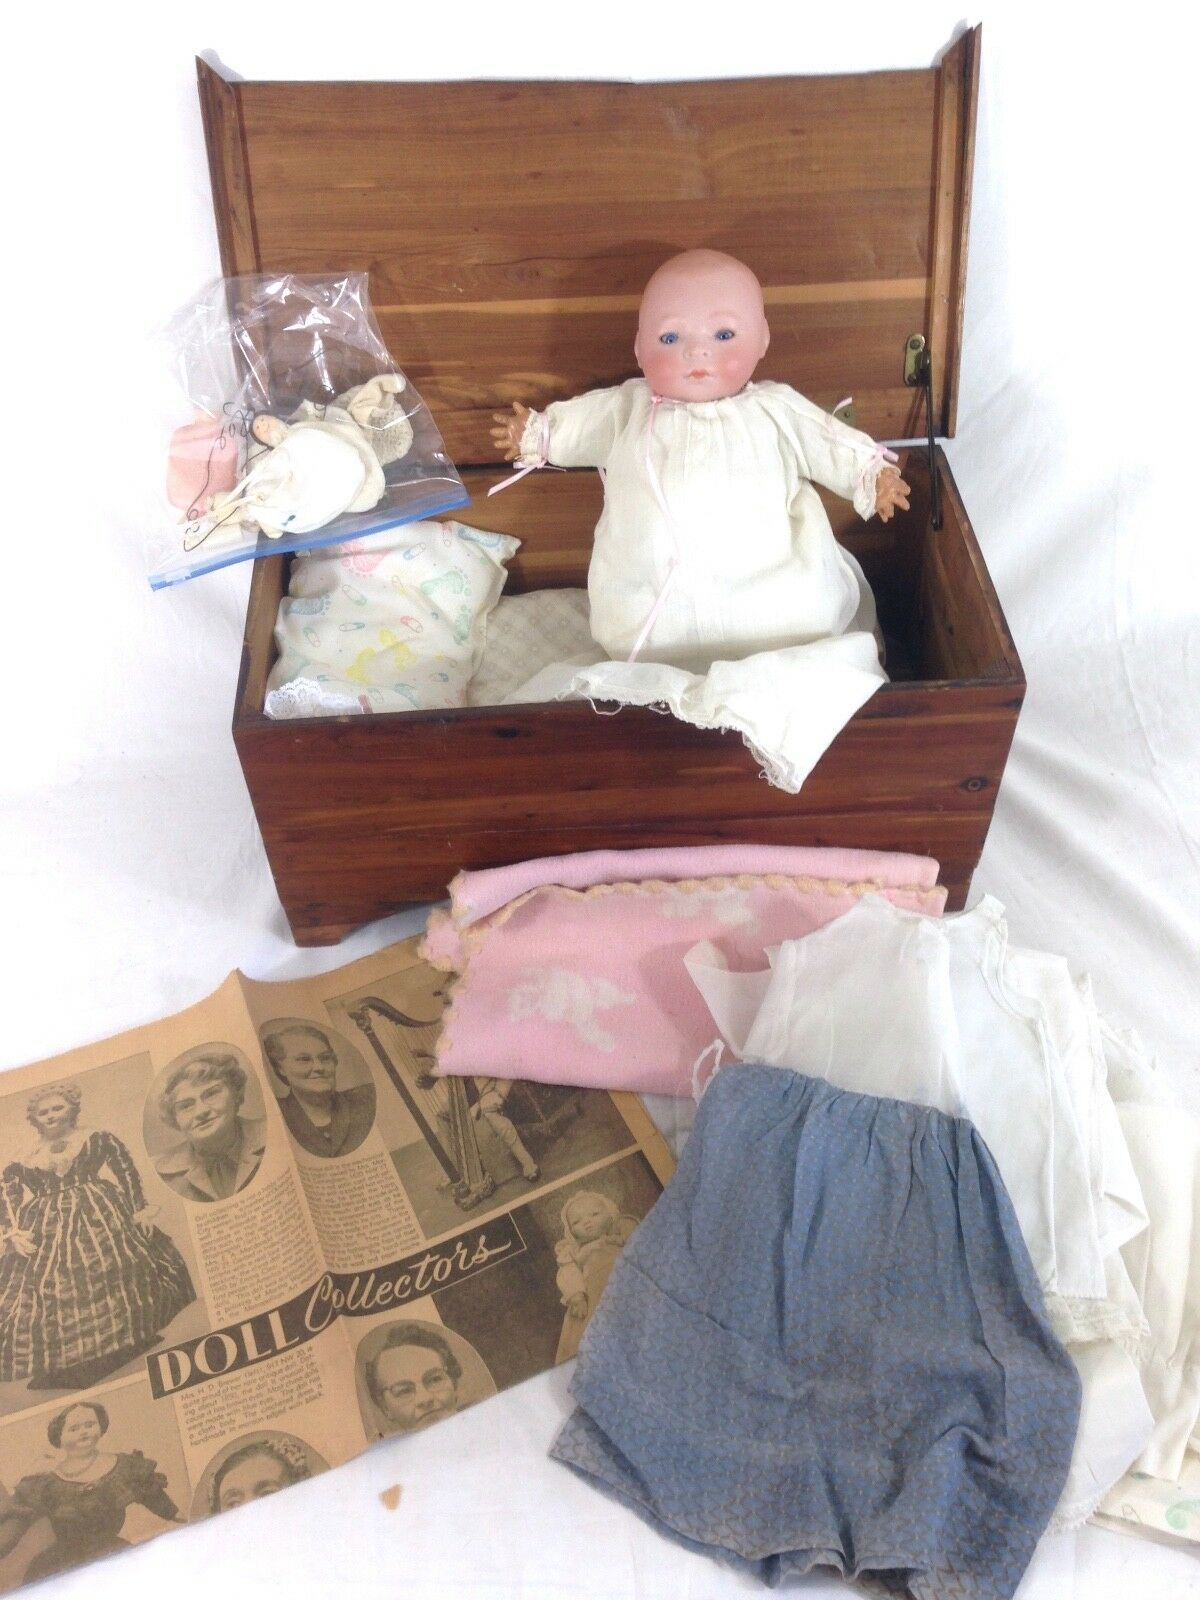 ANTIQUE LOUIS AMBERG & SONS BISQUE DOLL C. 1914 + Clothes / Accessories